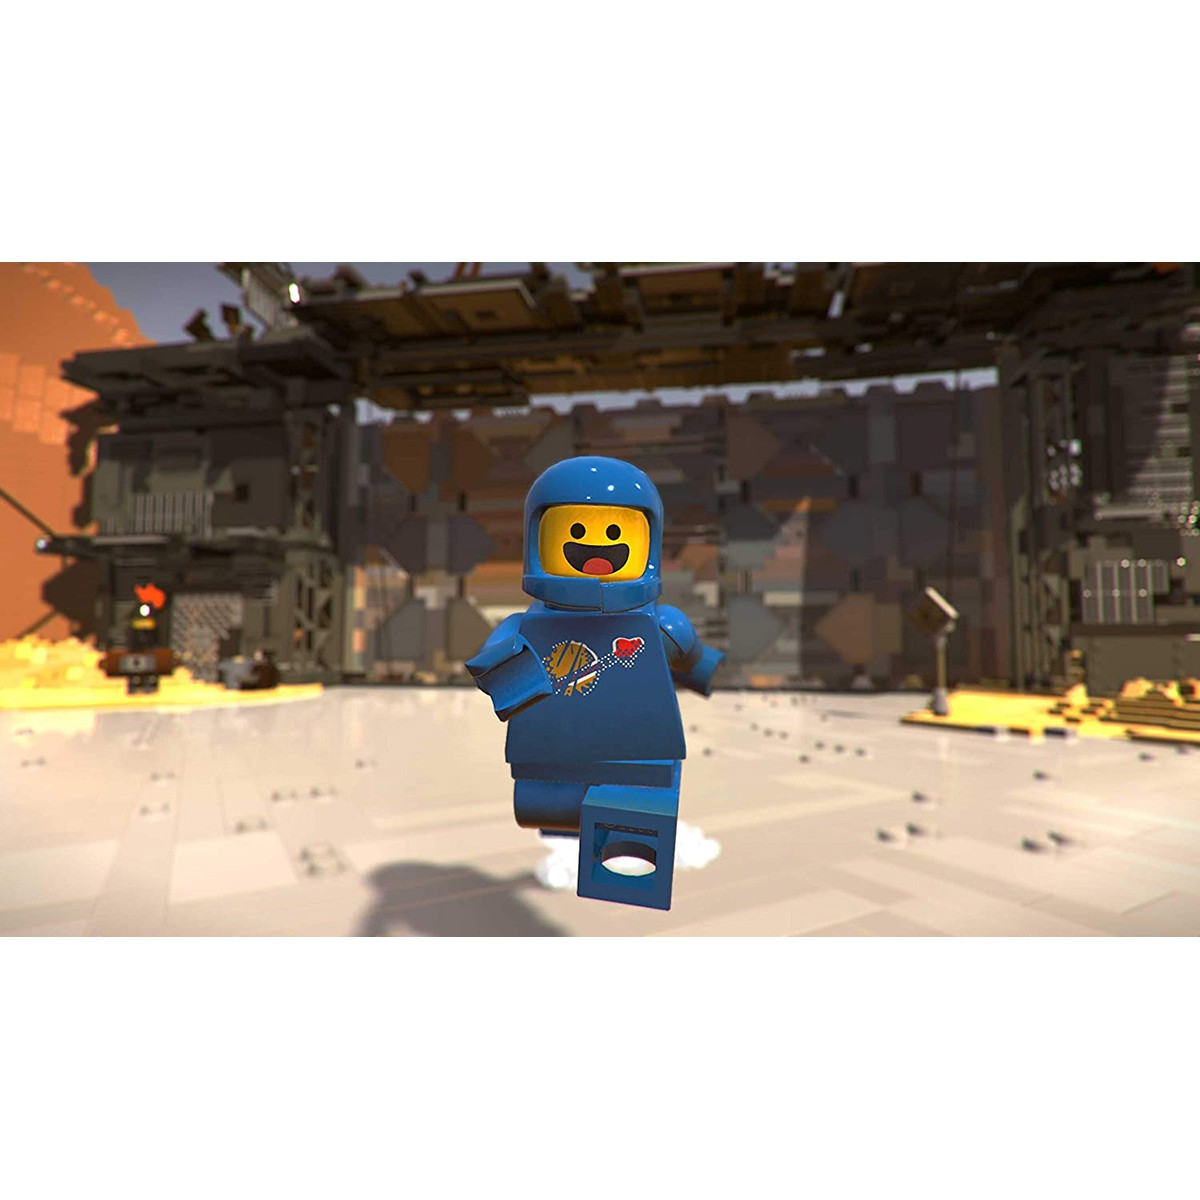 Uma Aventura Lego 2 Vídeogame - The Lego Movie 2 Videogame - Xbox One